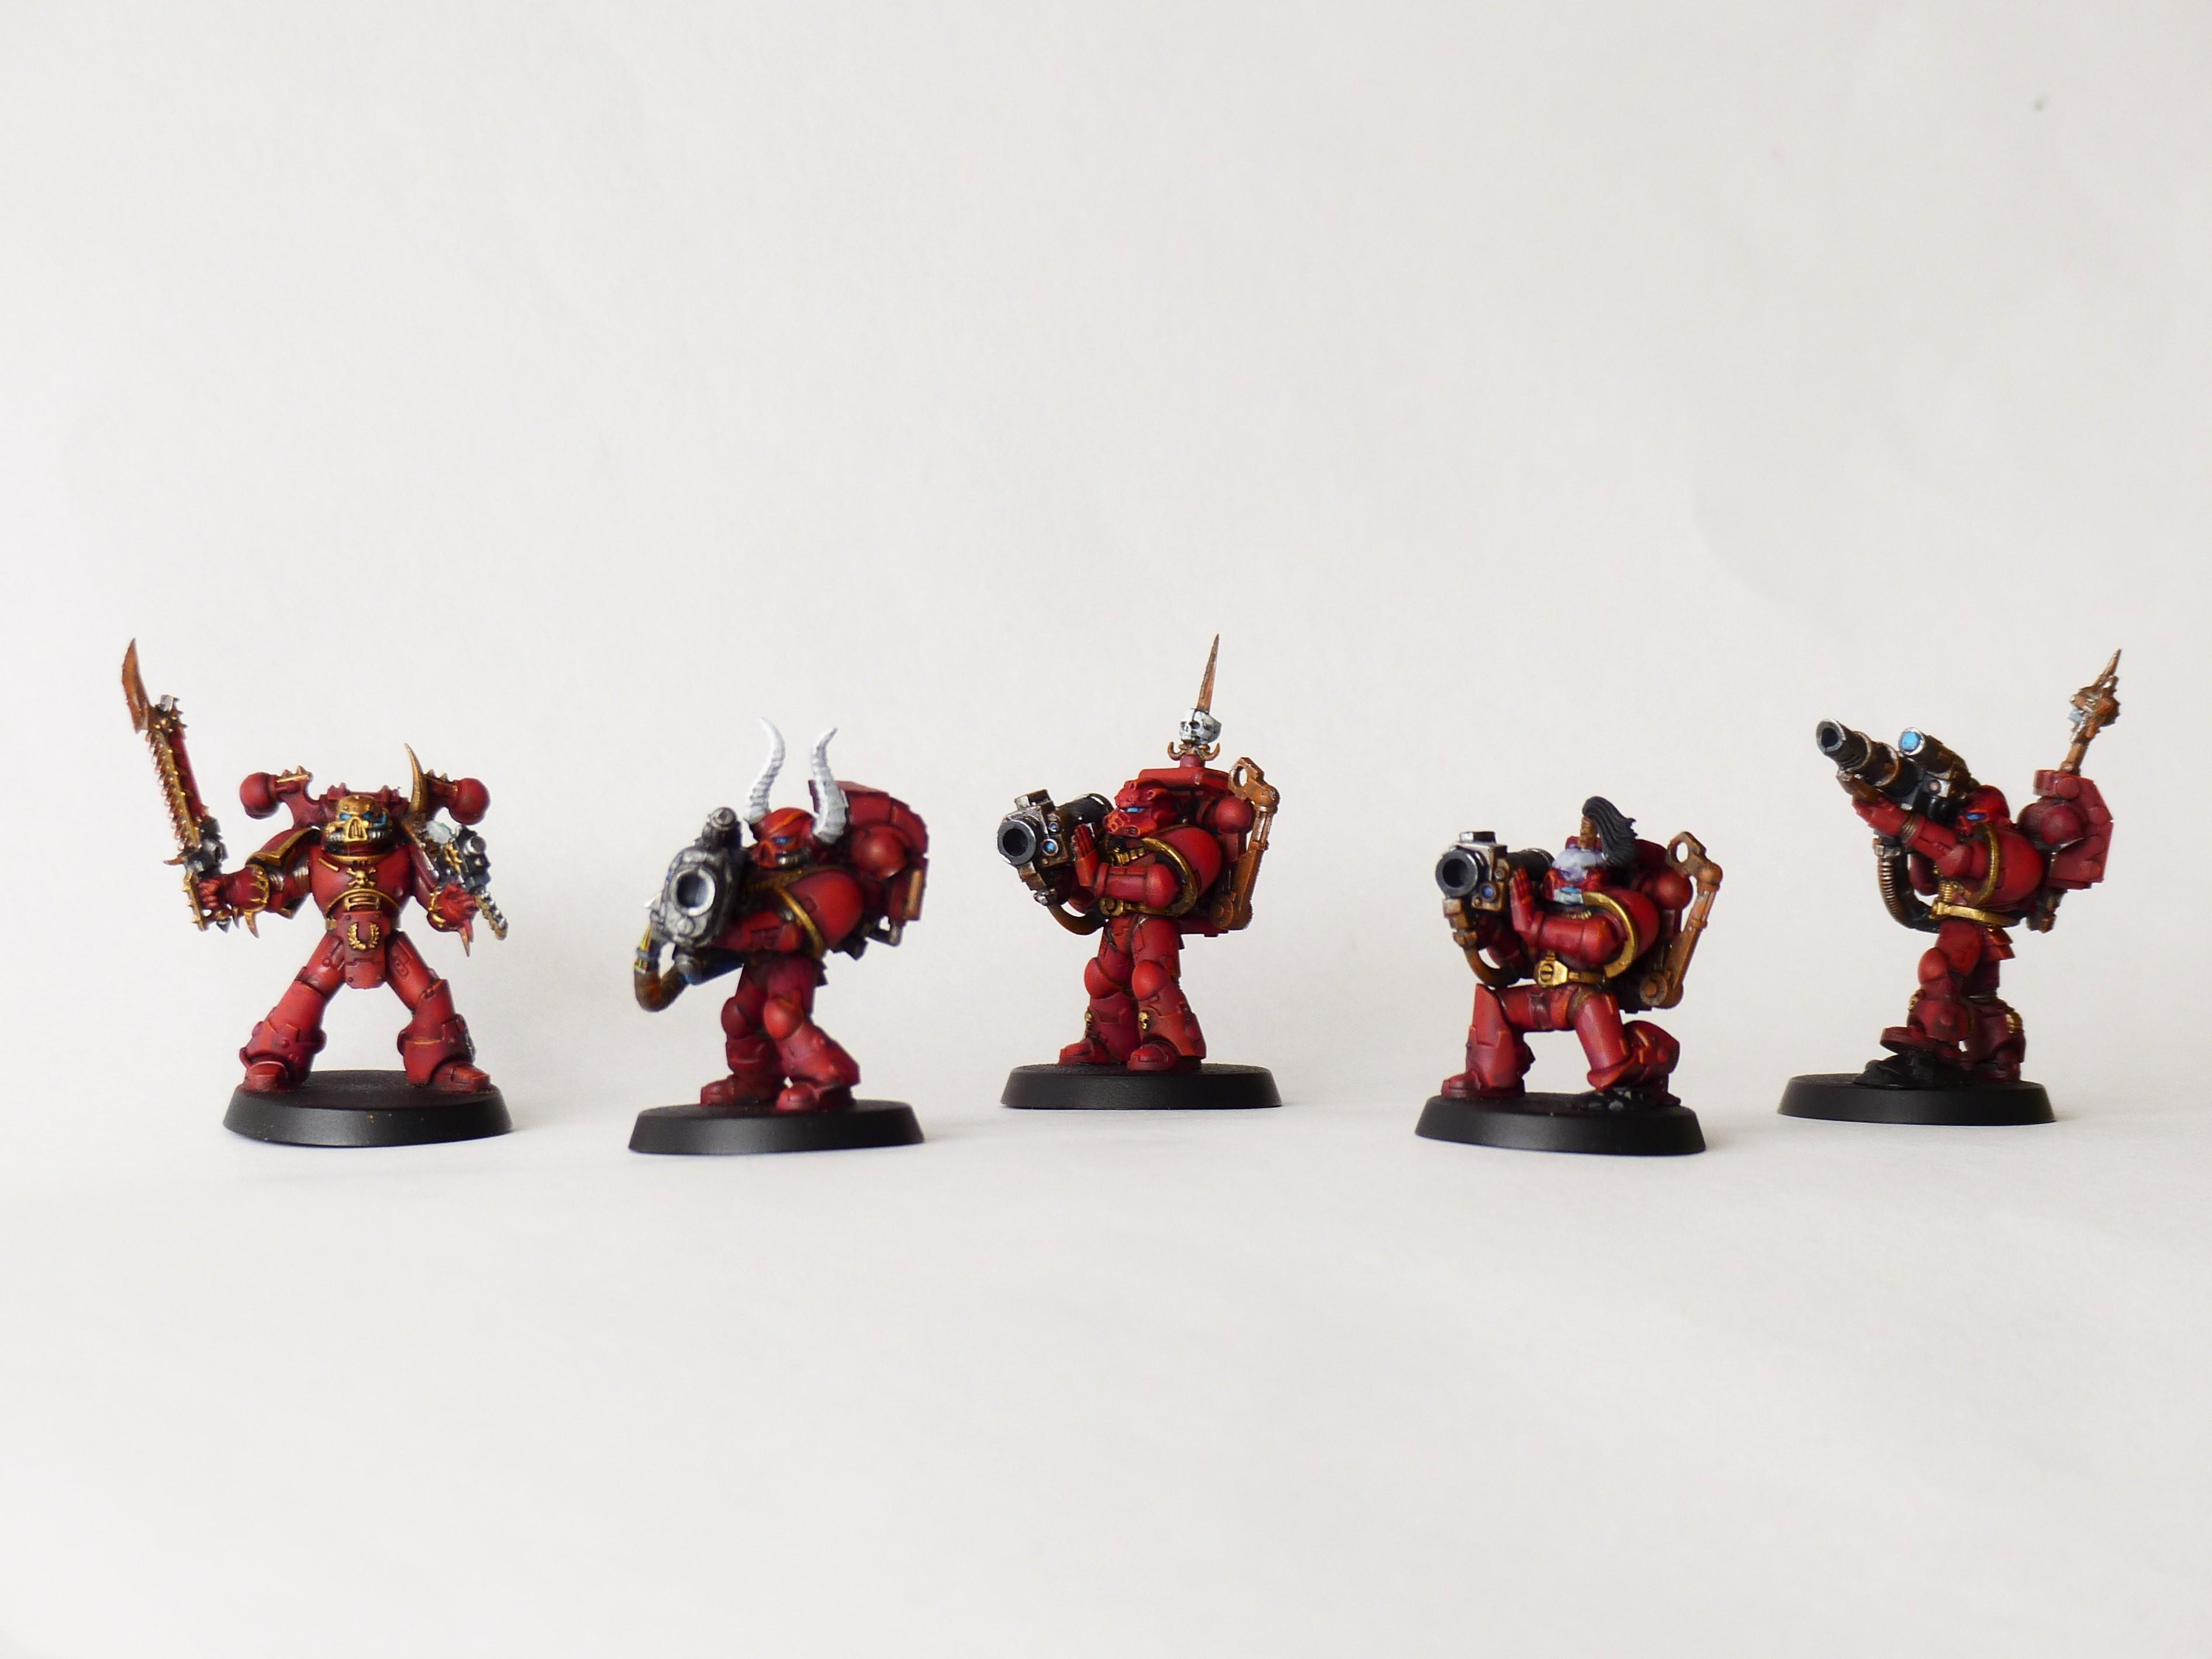 Chaos, Chaos Space Marines, Crimson Slaughter, Havocs, Heavy Weapon, Lascannon, Missile Launcher, Plasma Cannon, Space Marines